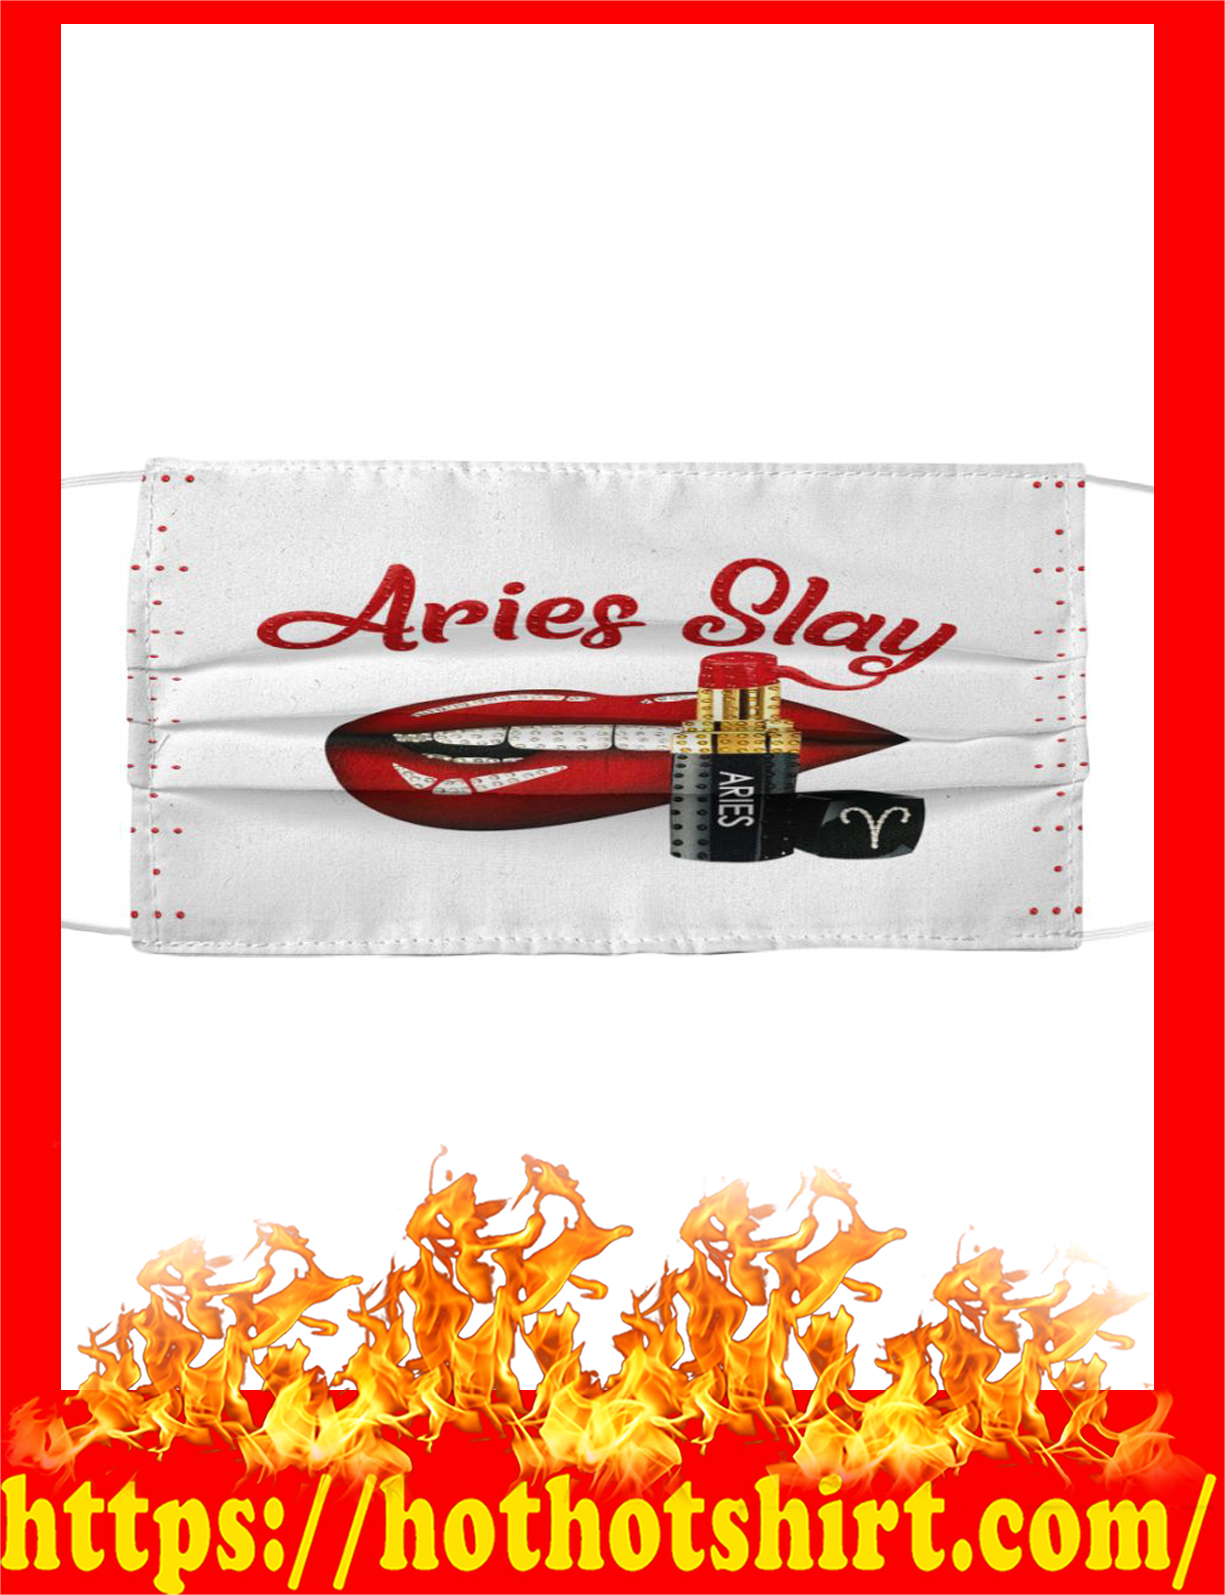 Lips aries slay face mask - detail